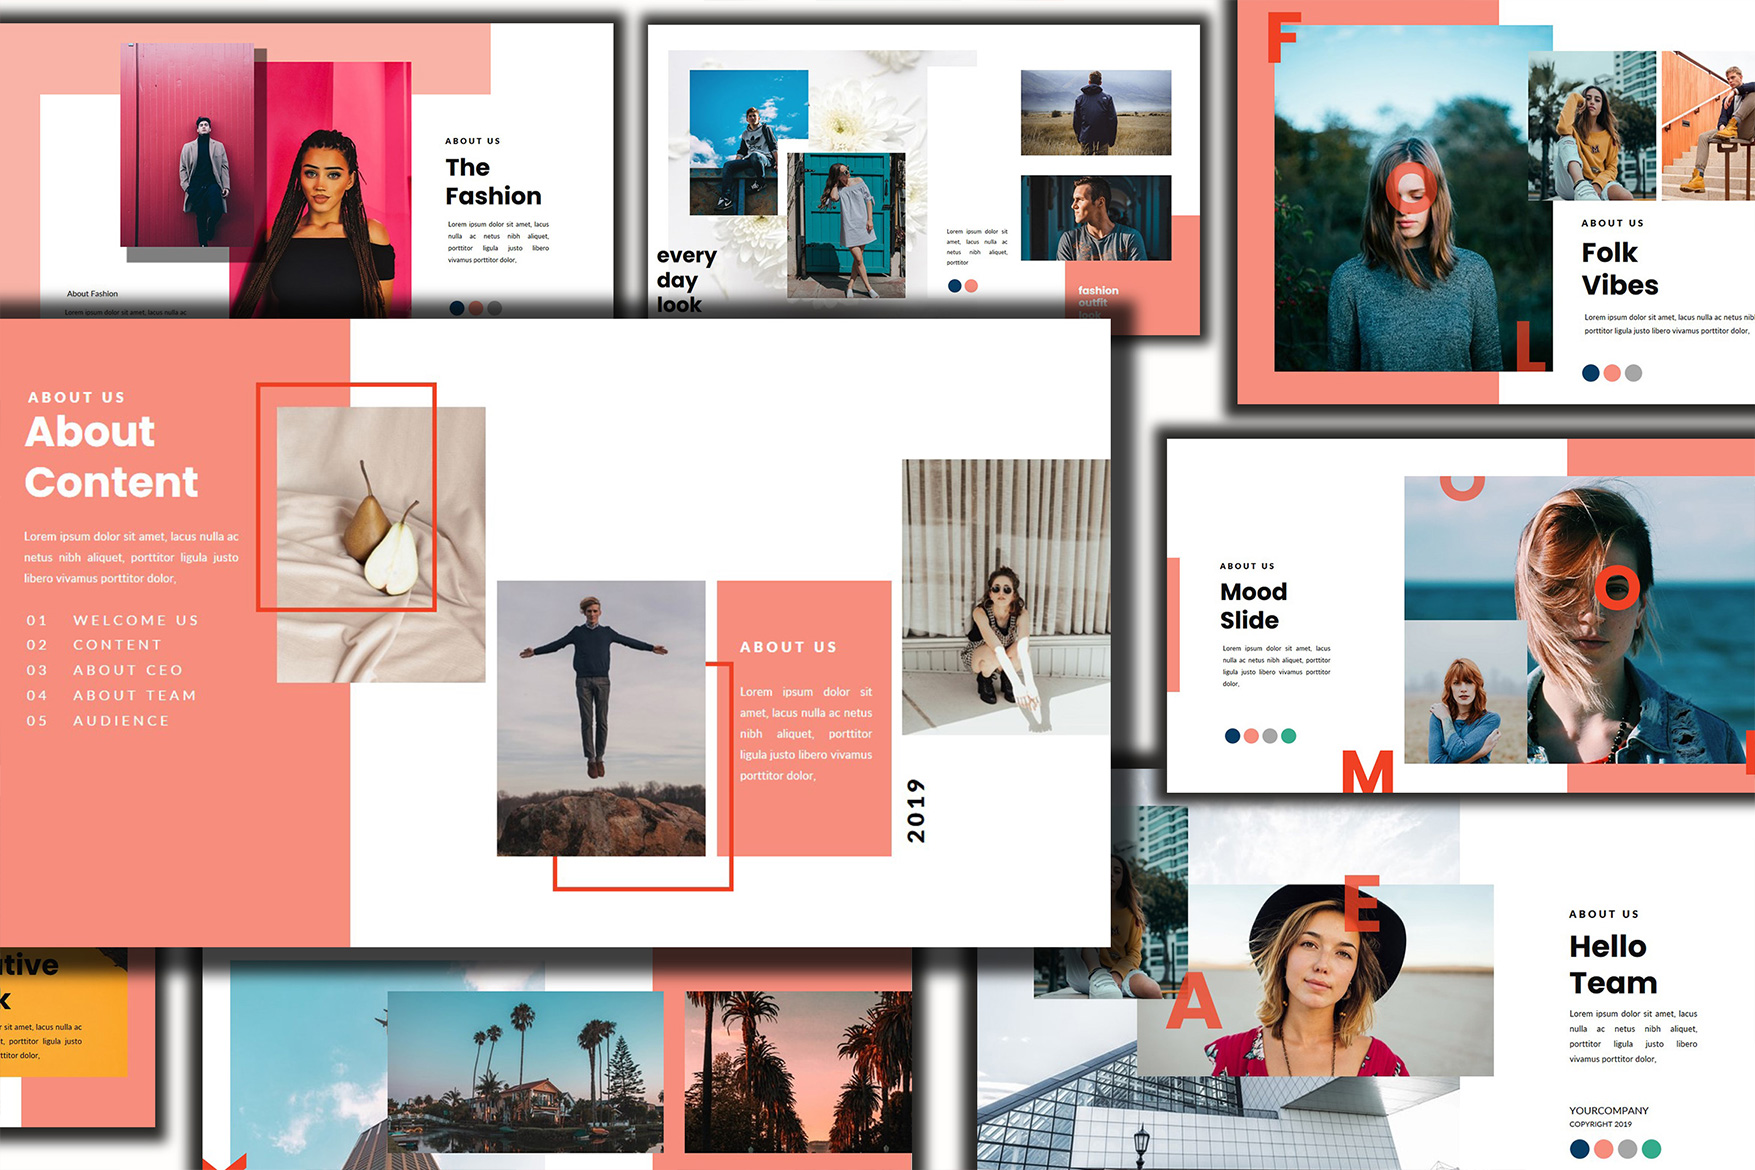 The Script Lookbook - Google Slides Presentation example image 5